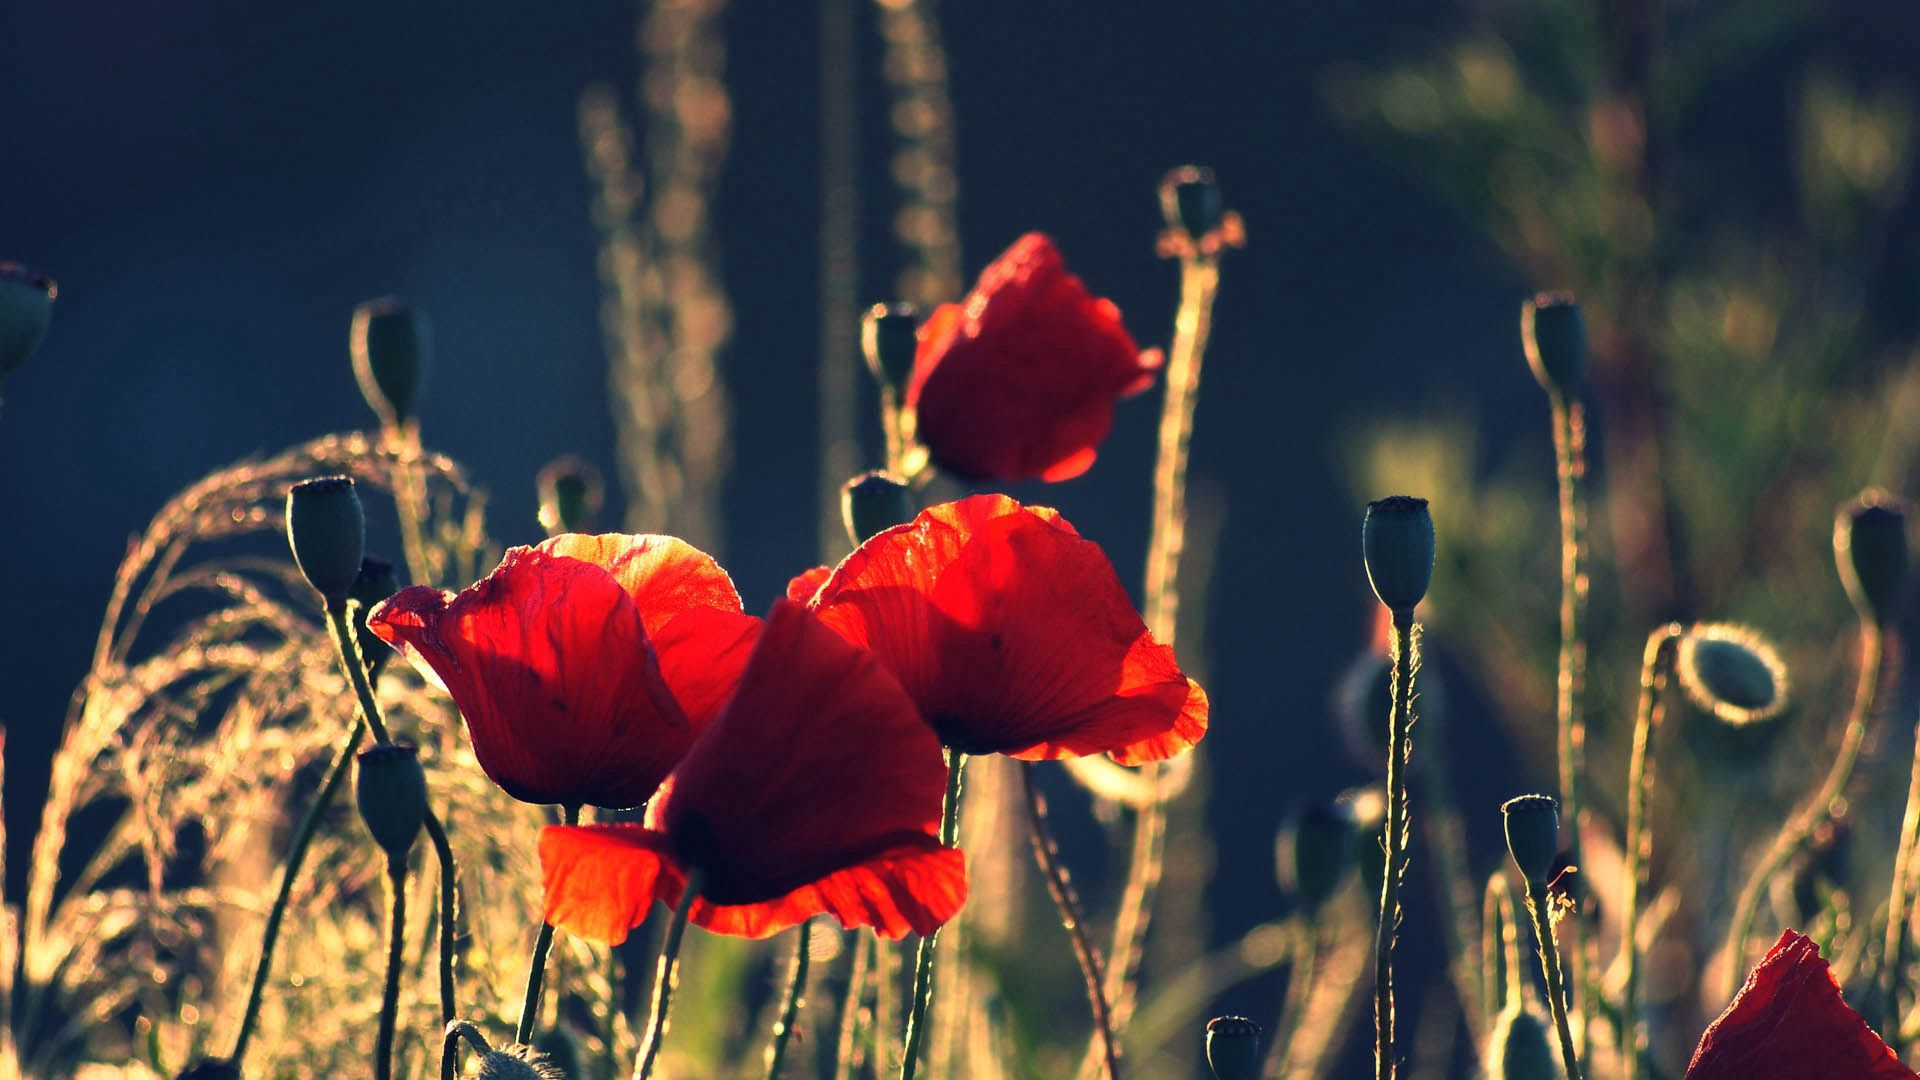 133642 Screensavers and Wallpapers Poppies for phone. Download Flowers, Poppies, Stem, Stalk pictures for free